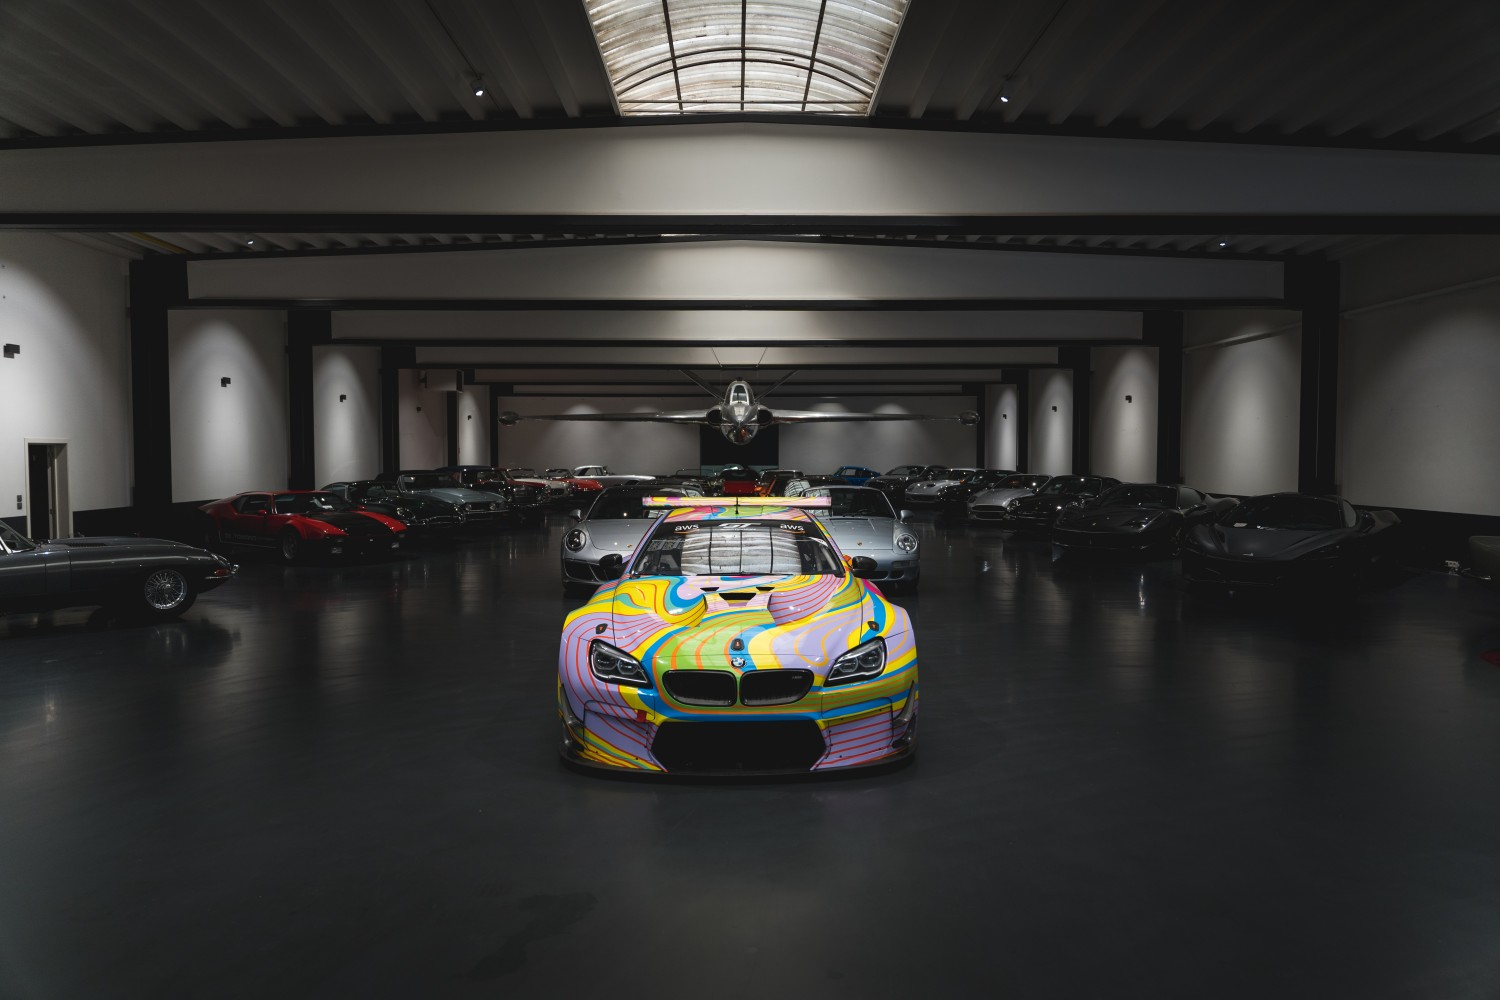 Boutsen Ginion Racing has revealed the first images of its stunning BMW M6 GT3 'art car' livery.